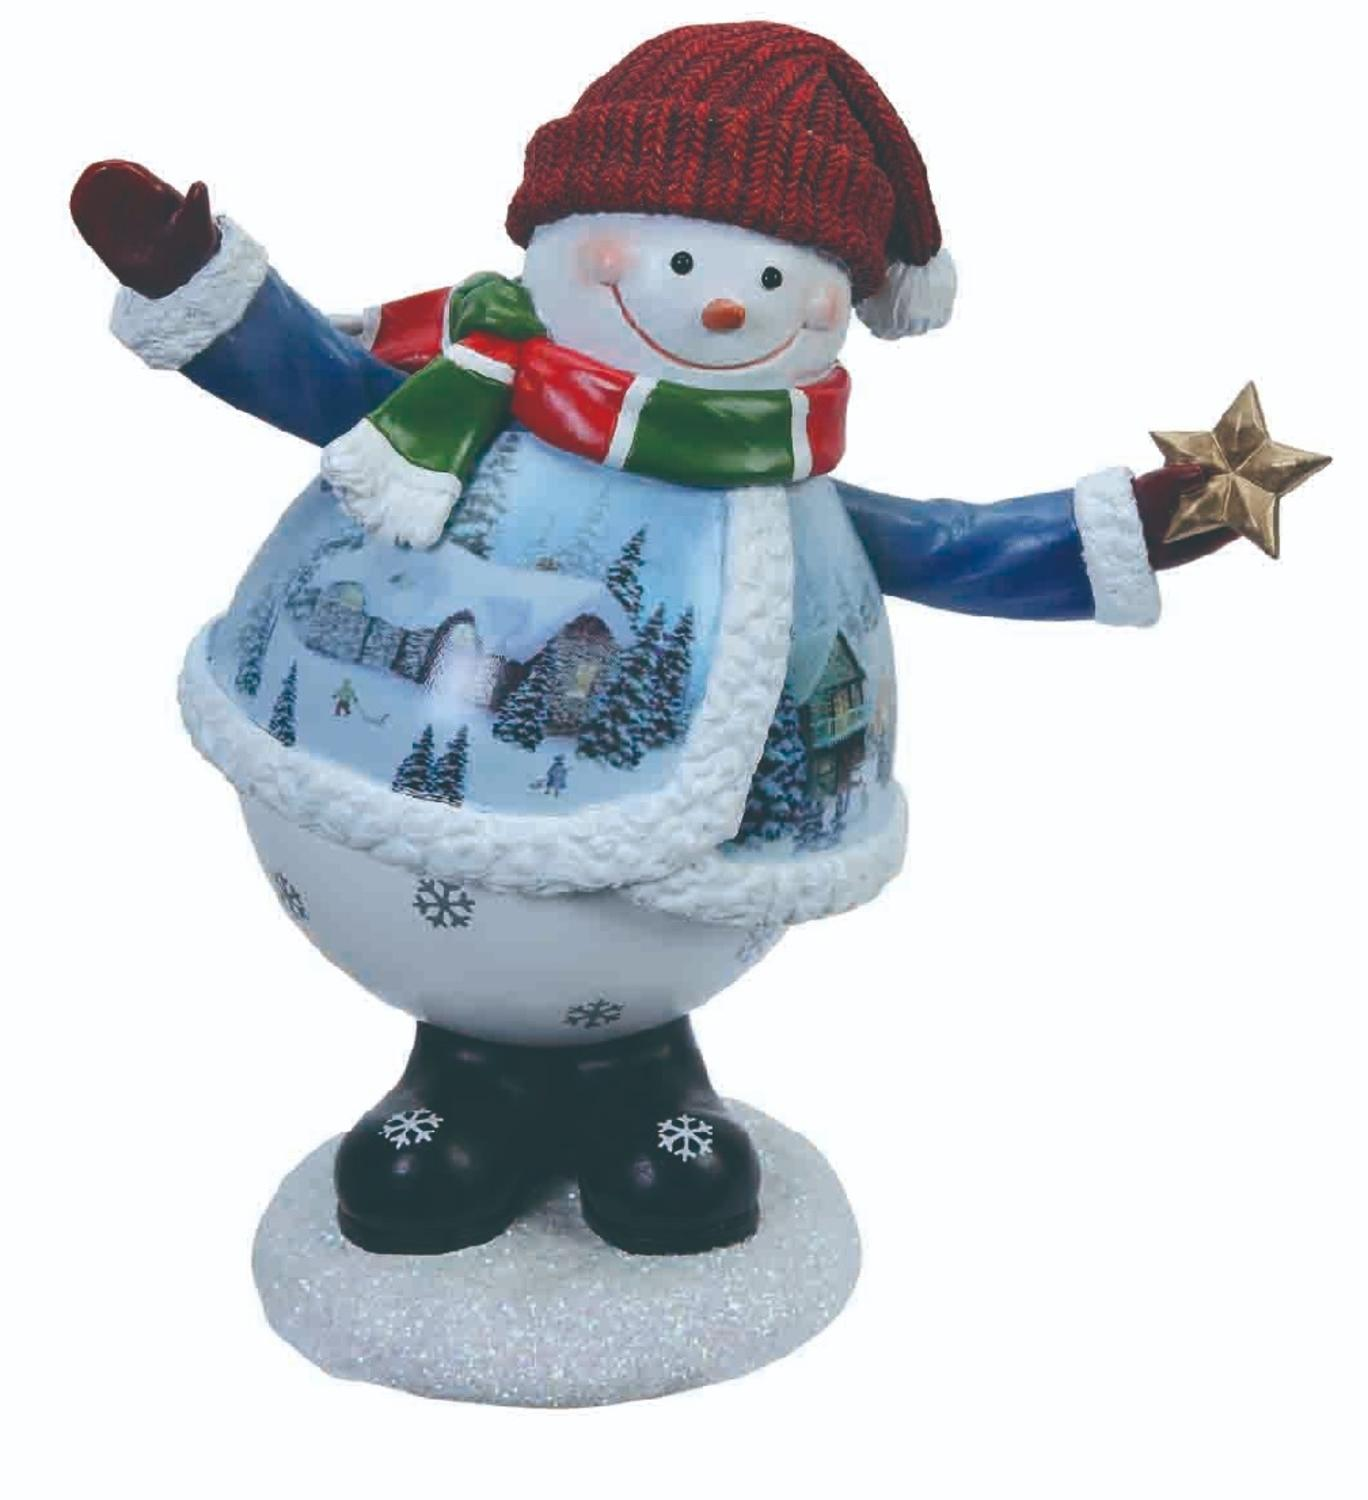 Pack of 2 Musical Winter Waving Snowman Table Top Figures 6.5""